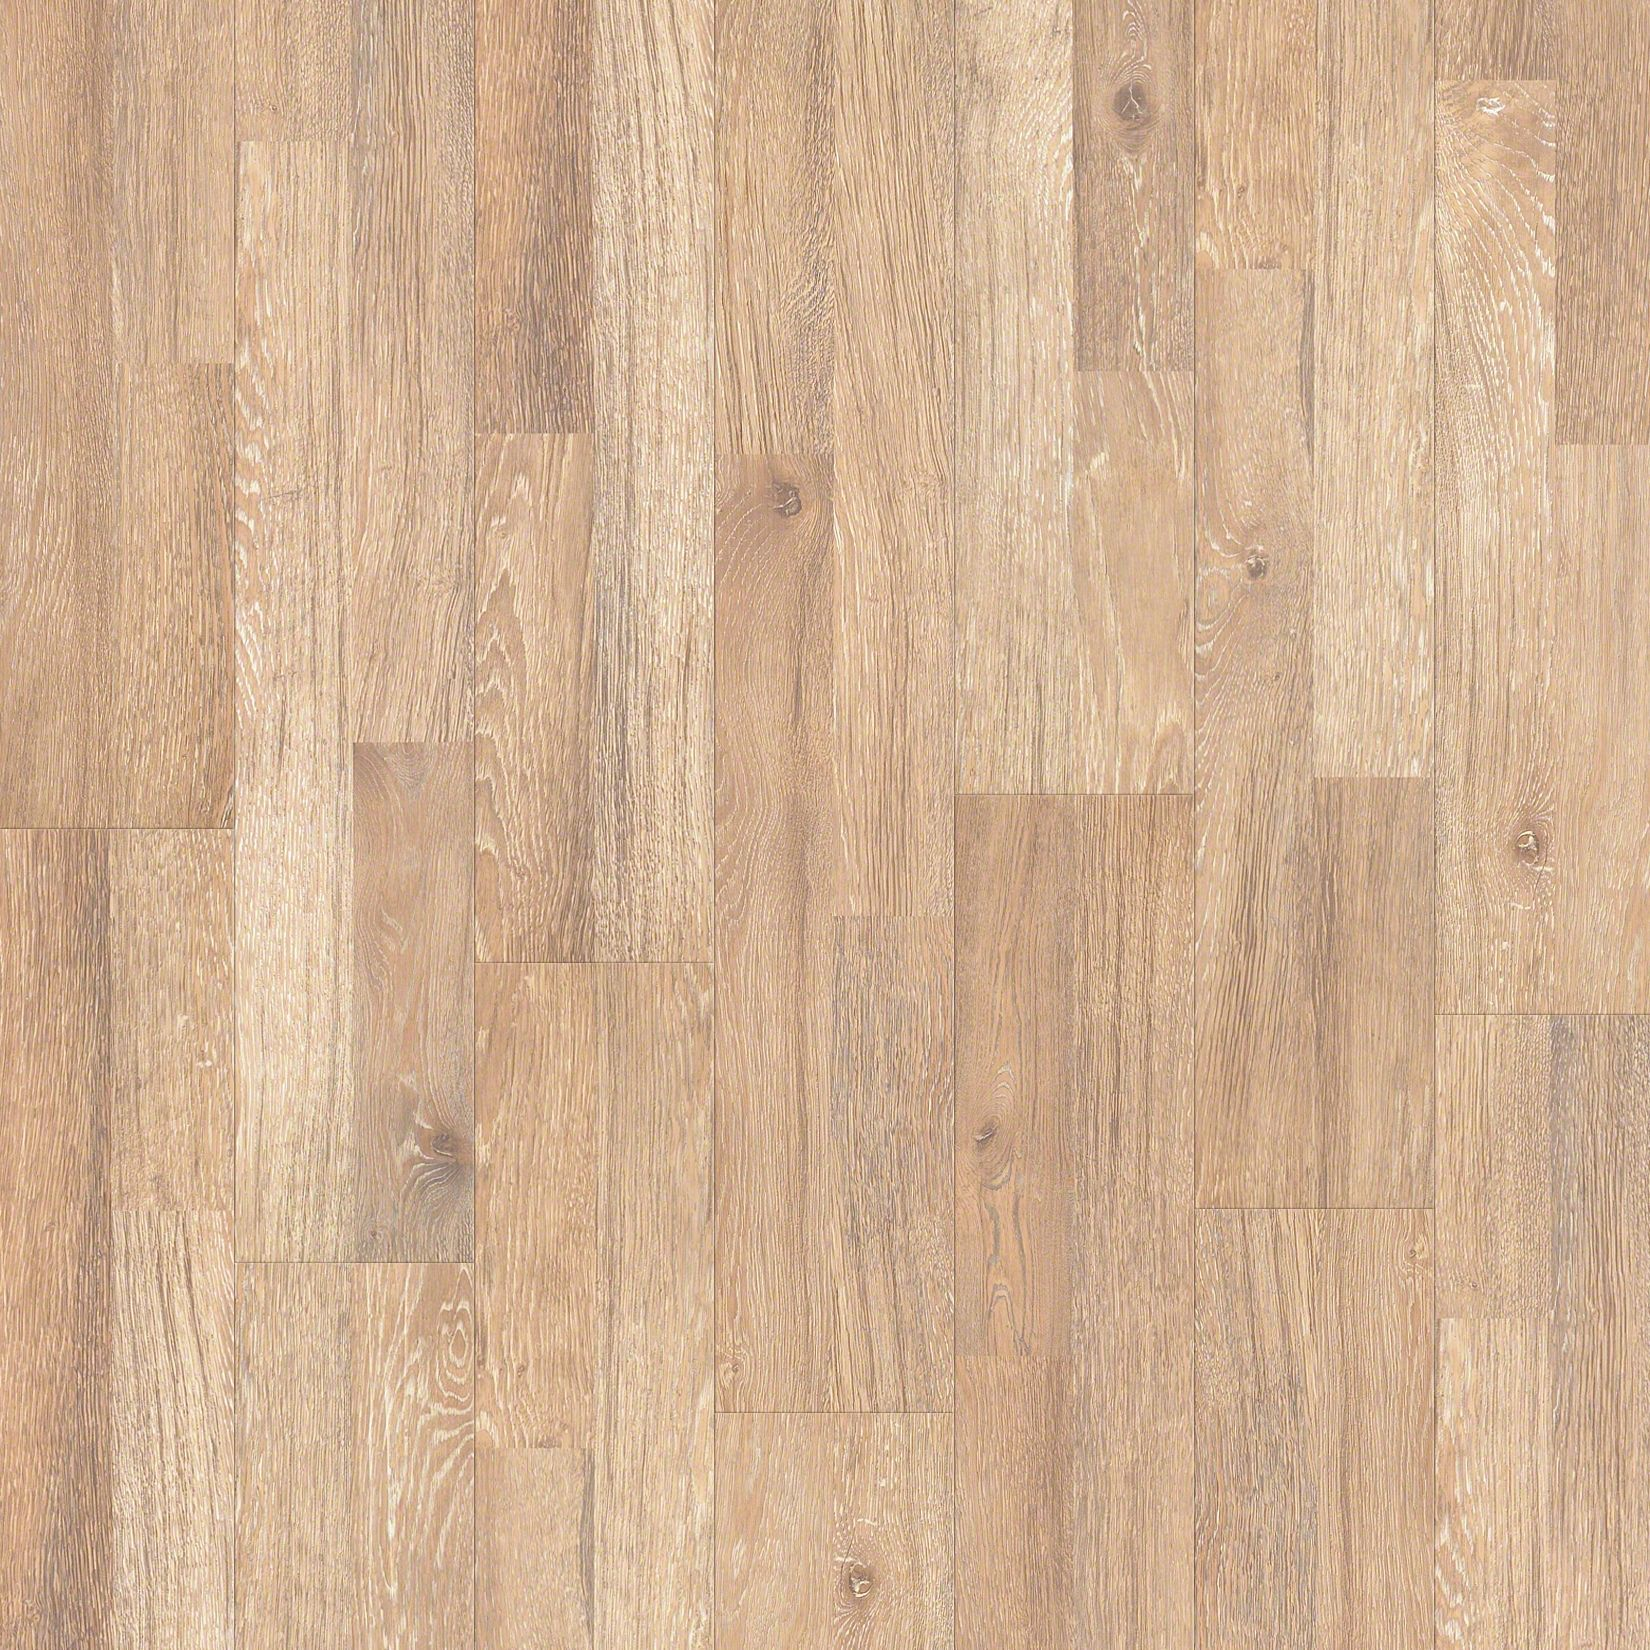 Reclaimed Collection Sl332 Color Flax 00199 9 Colors Available Shaw Wood By Shaw Floors Laminate Flooring Flooring Wood Laminate Flooring